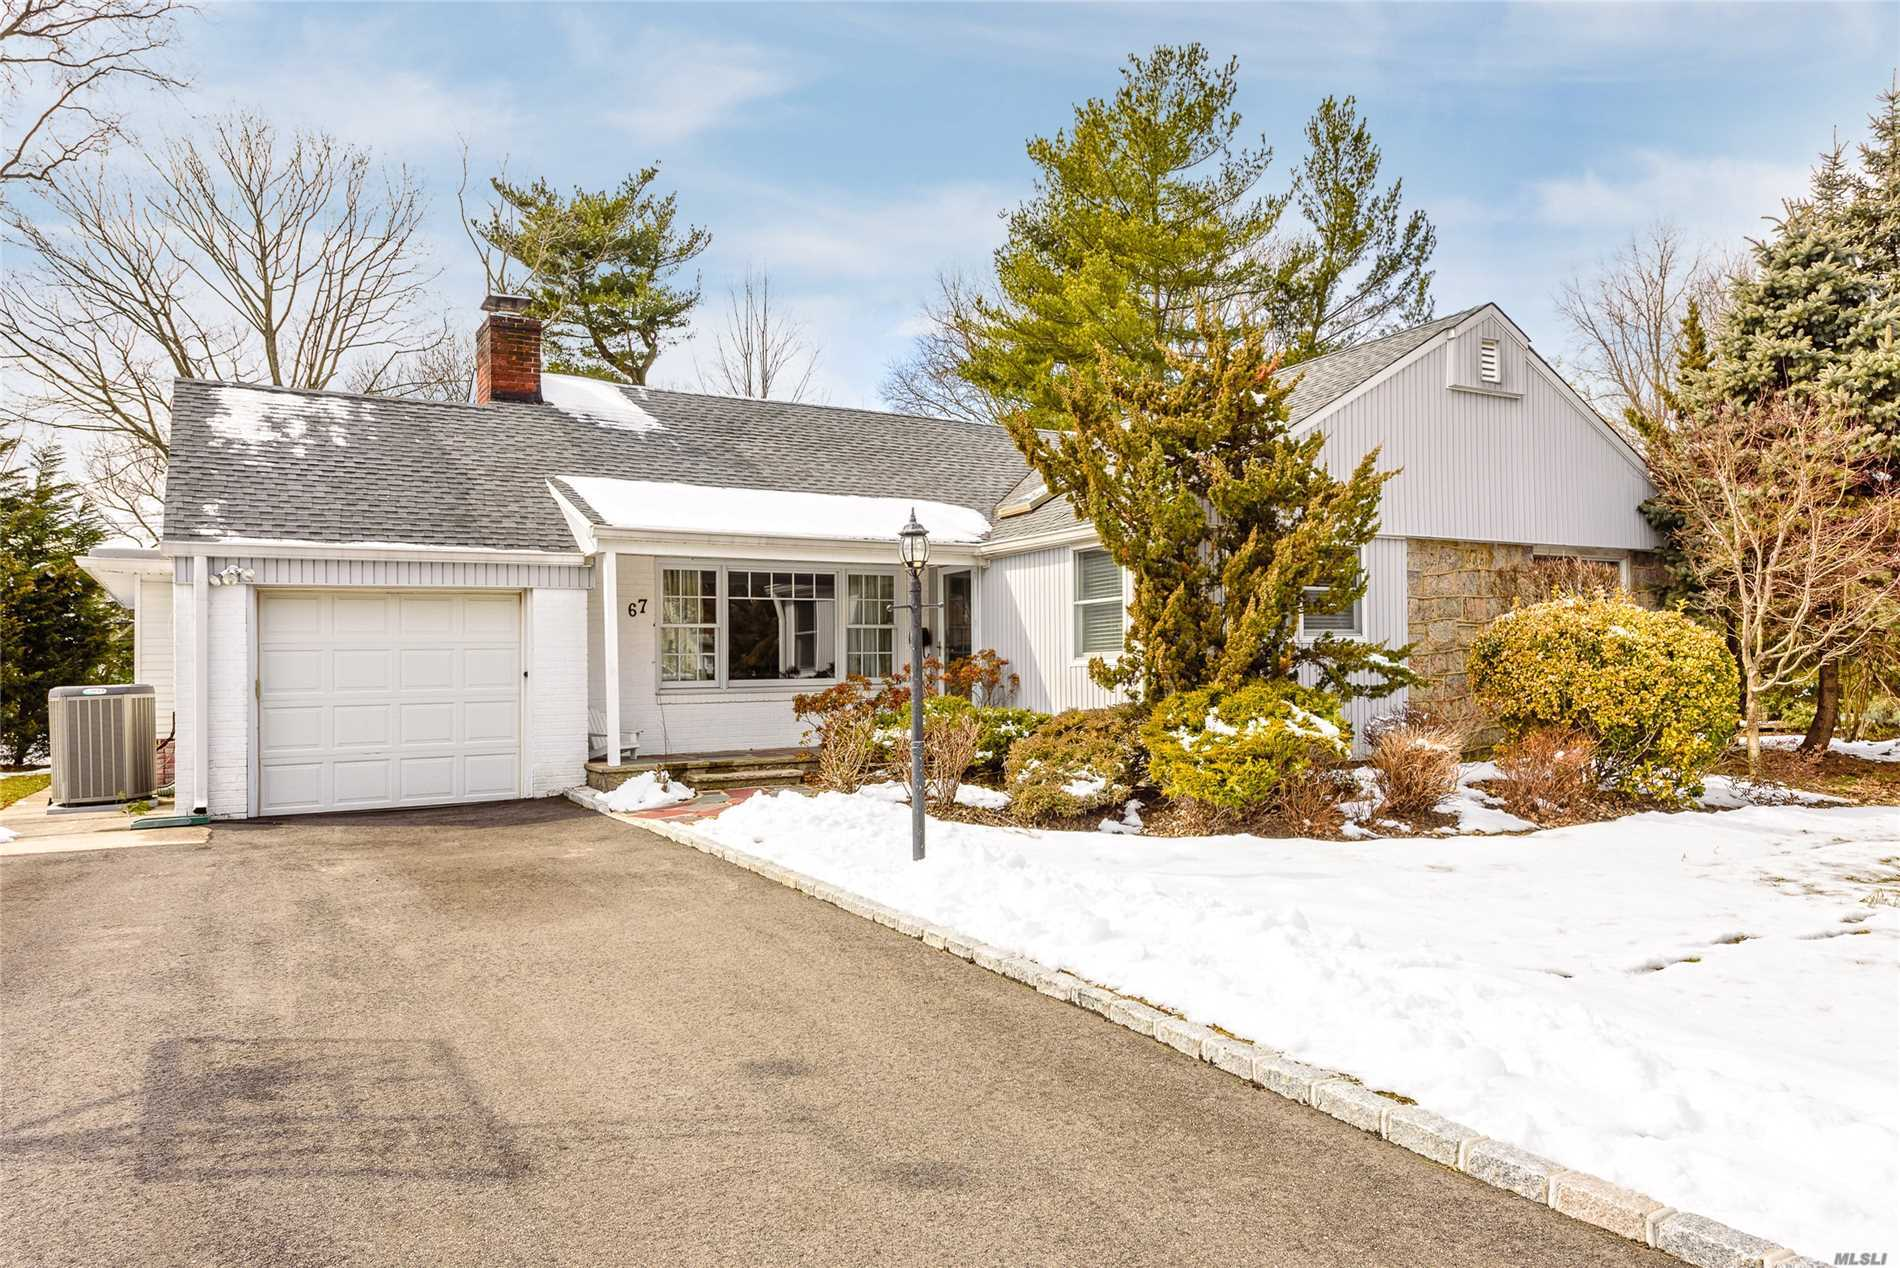 East HIlls. Diamond condition with bright, open and airy ranch in perfect location in the heart of Fairfield Park. Featuring all formal rooms for entertaining including 4 family bedrooms, updated kitchen and baths, beautiful hardwood floors throughout and fabulous finished basement. Wonderful backyard with large patio. This is truly move in condition with access to the East Hills Park. Will not last!